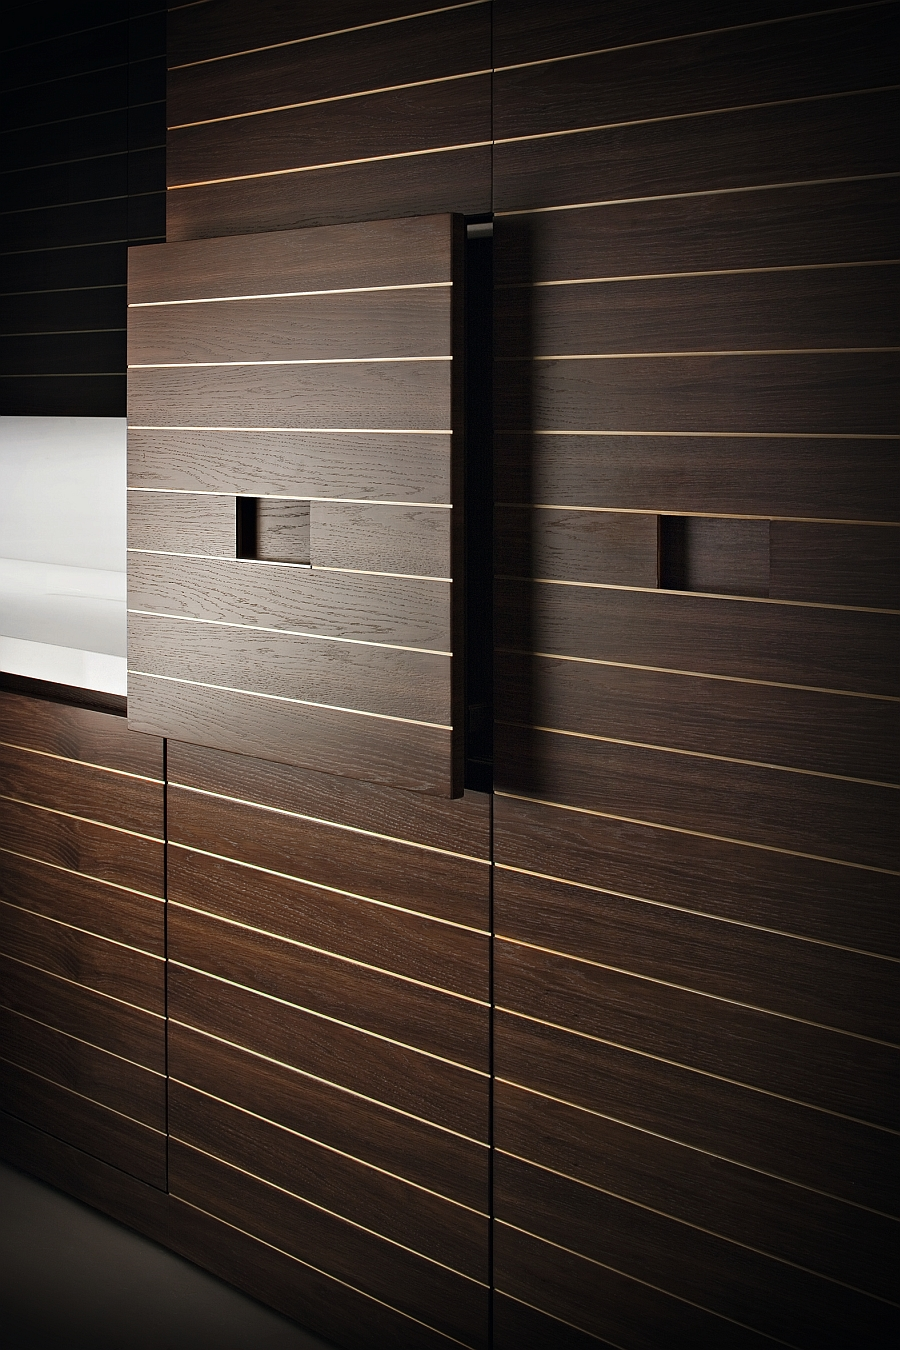 Hide away your kitchen appliances with the new slide system from Armani & Dada